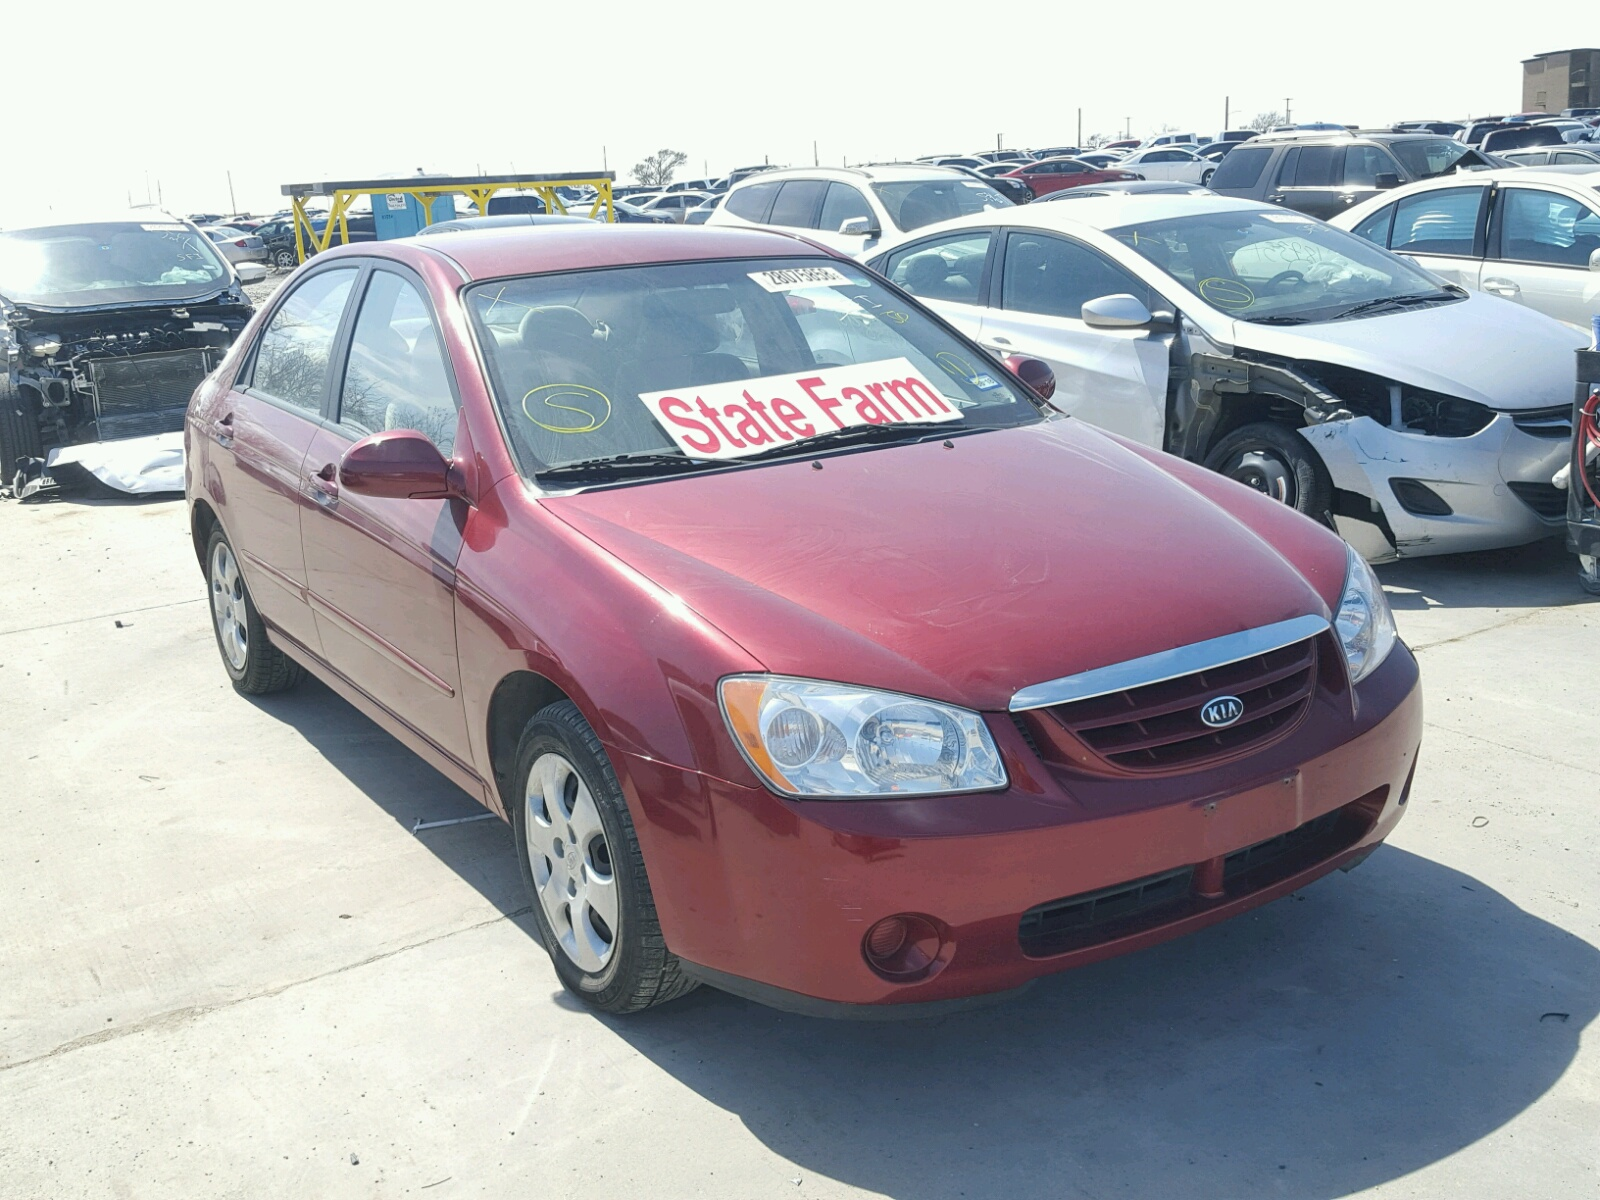 auctions carfinder copart dallas title tx on sale kia optima auto vehicle online lot lx salvage gray left view en in